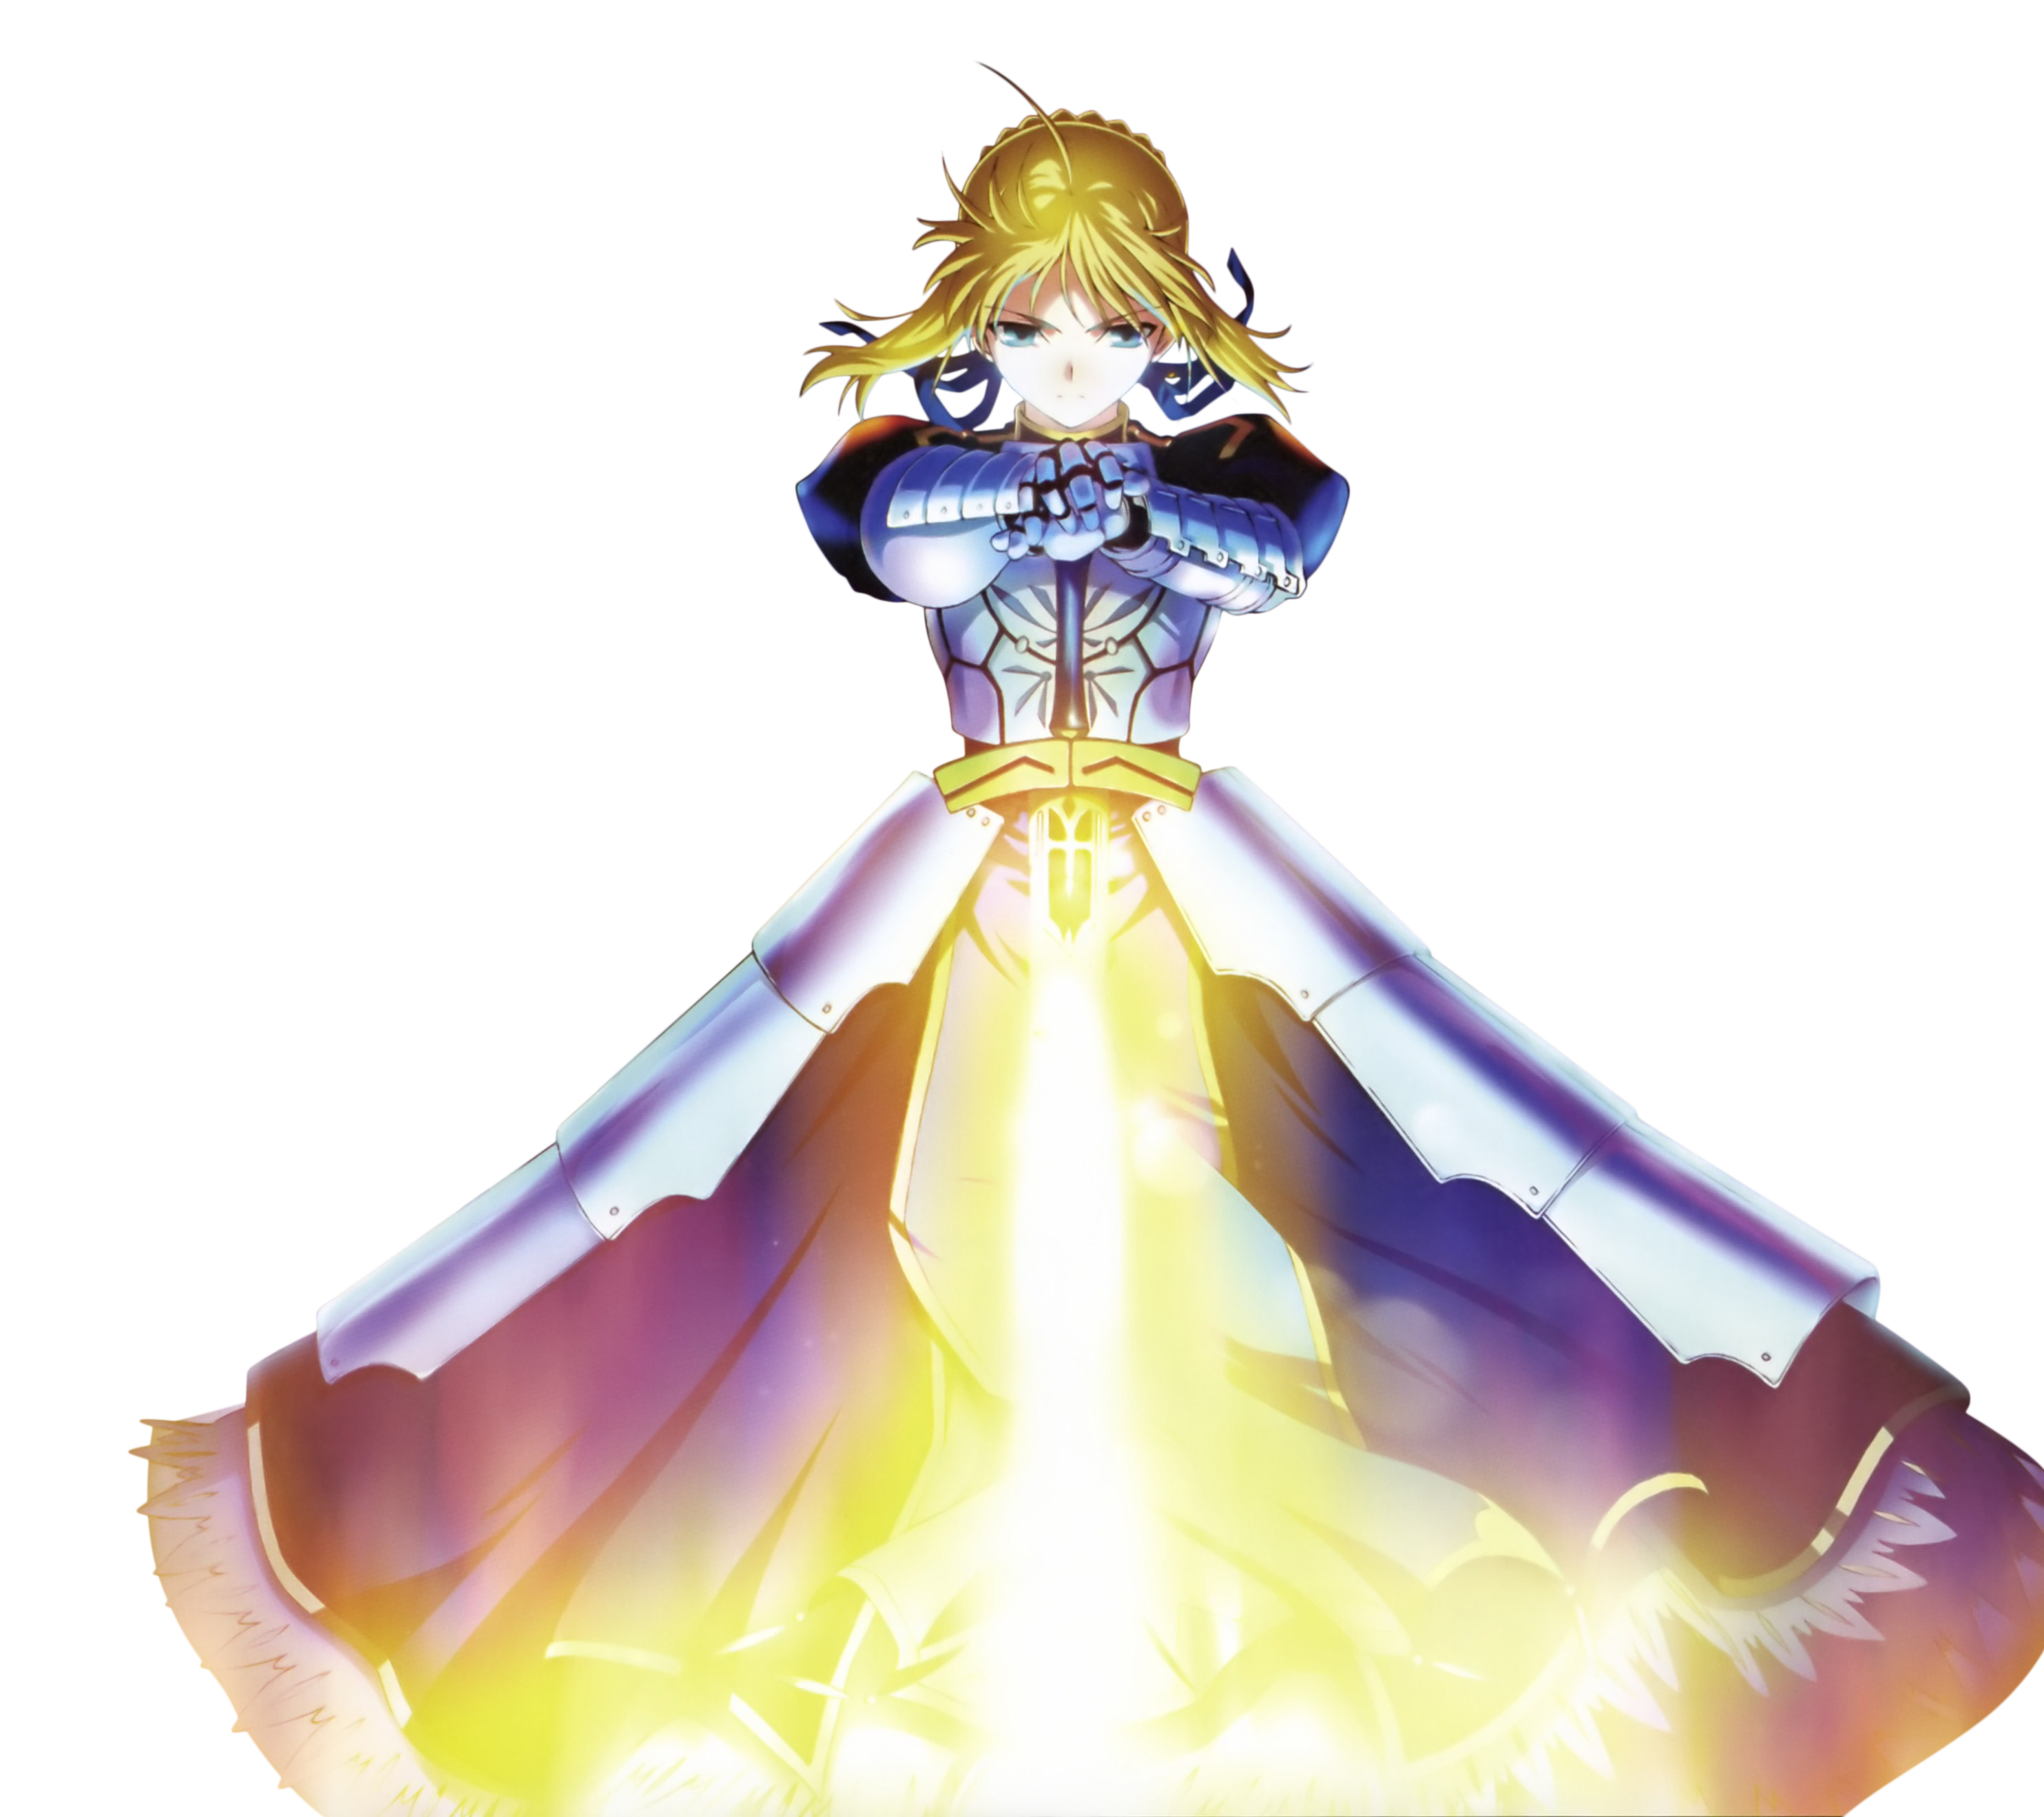 Saber transparent excalibur. Fully charged vs agrias